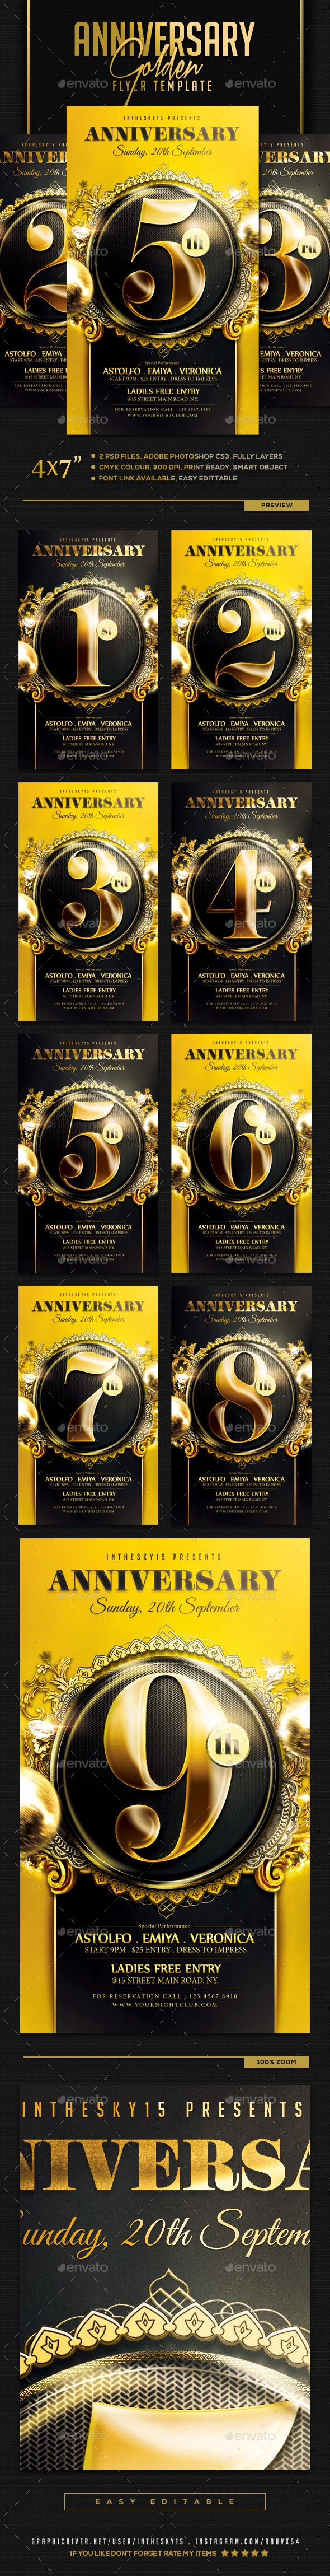 92 best flyer images on pinterest brochures business cards and golden anniversary flyer template pronofoot35fo Choice Image